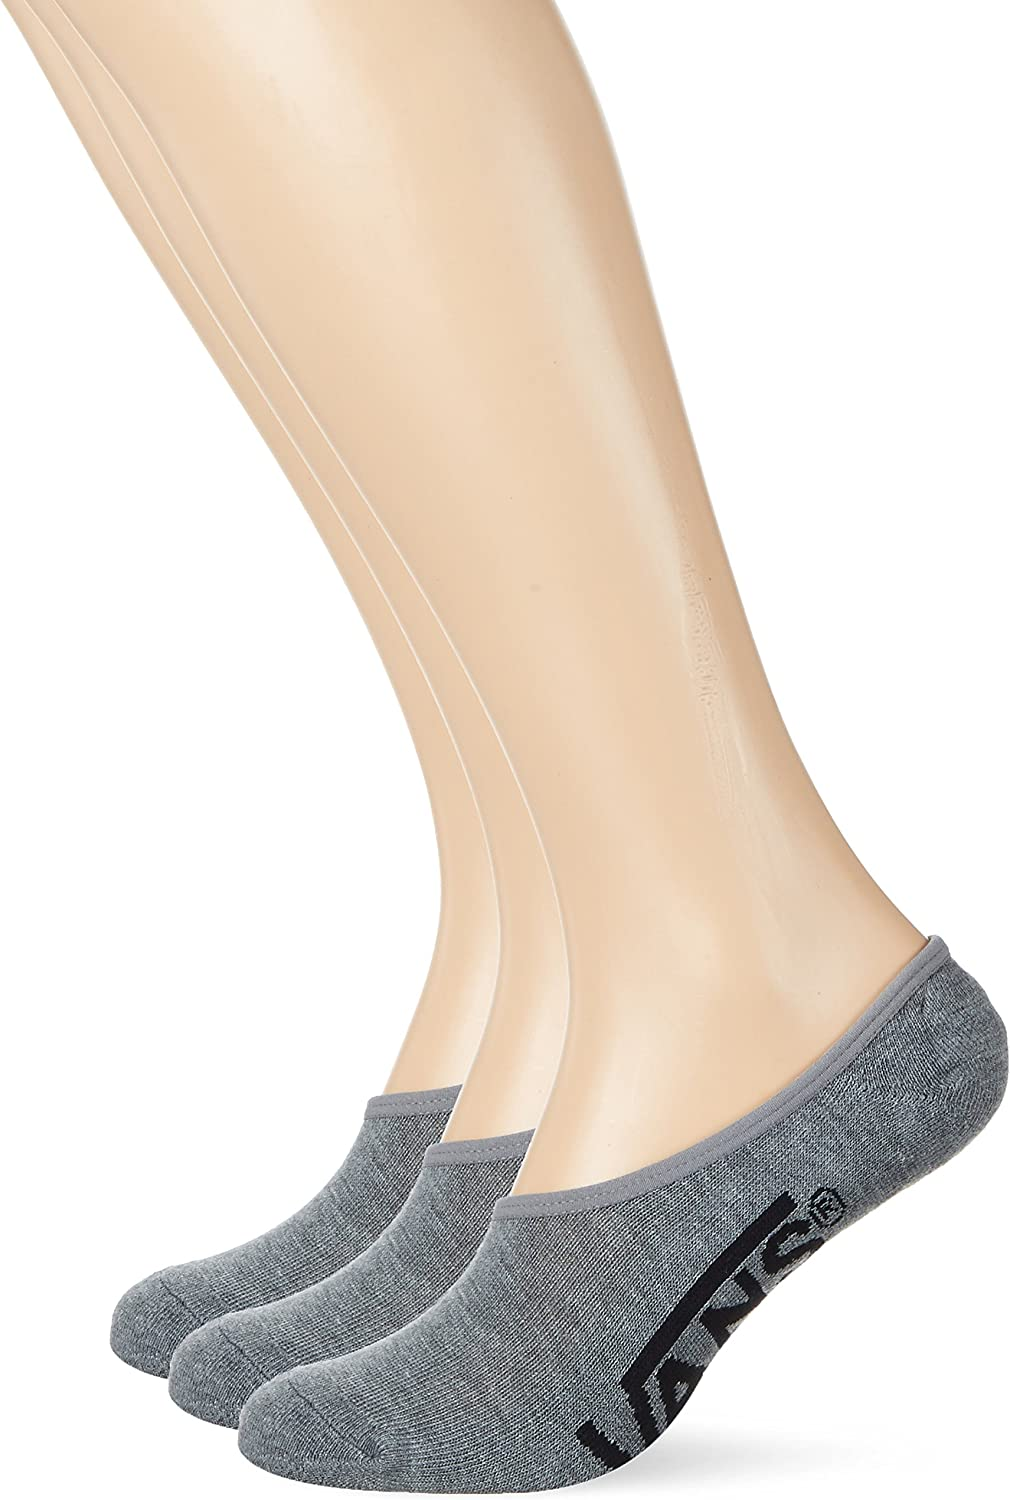 Vans Men's No Show Socks Heather Gray with black lettering - 3 pairs